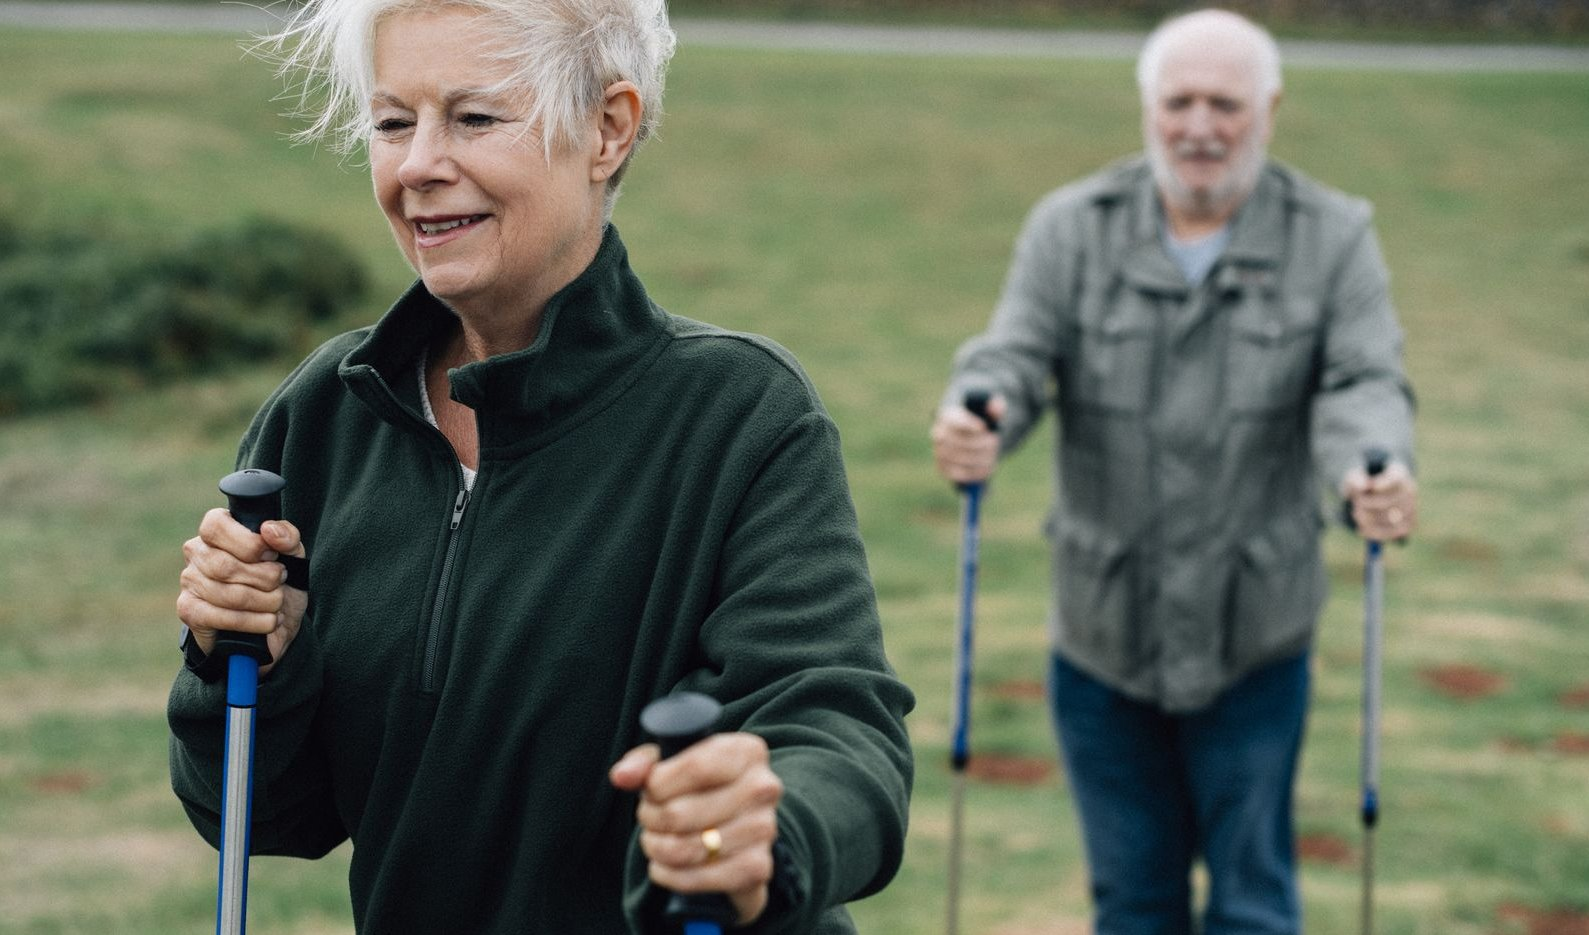 Staying active - How to Keep your Elderly Loved Ones Moving